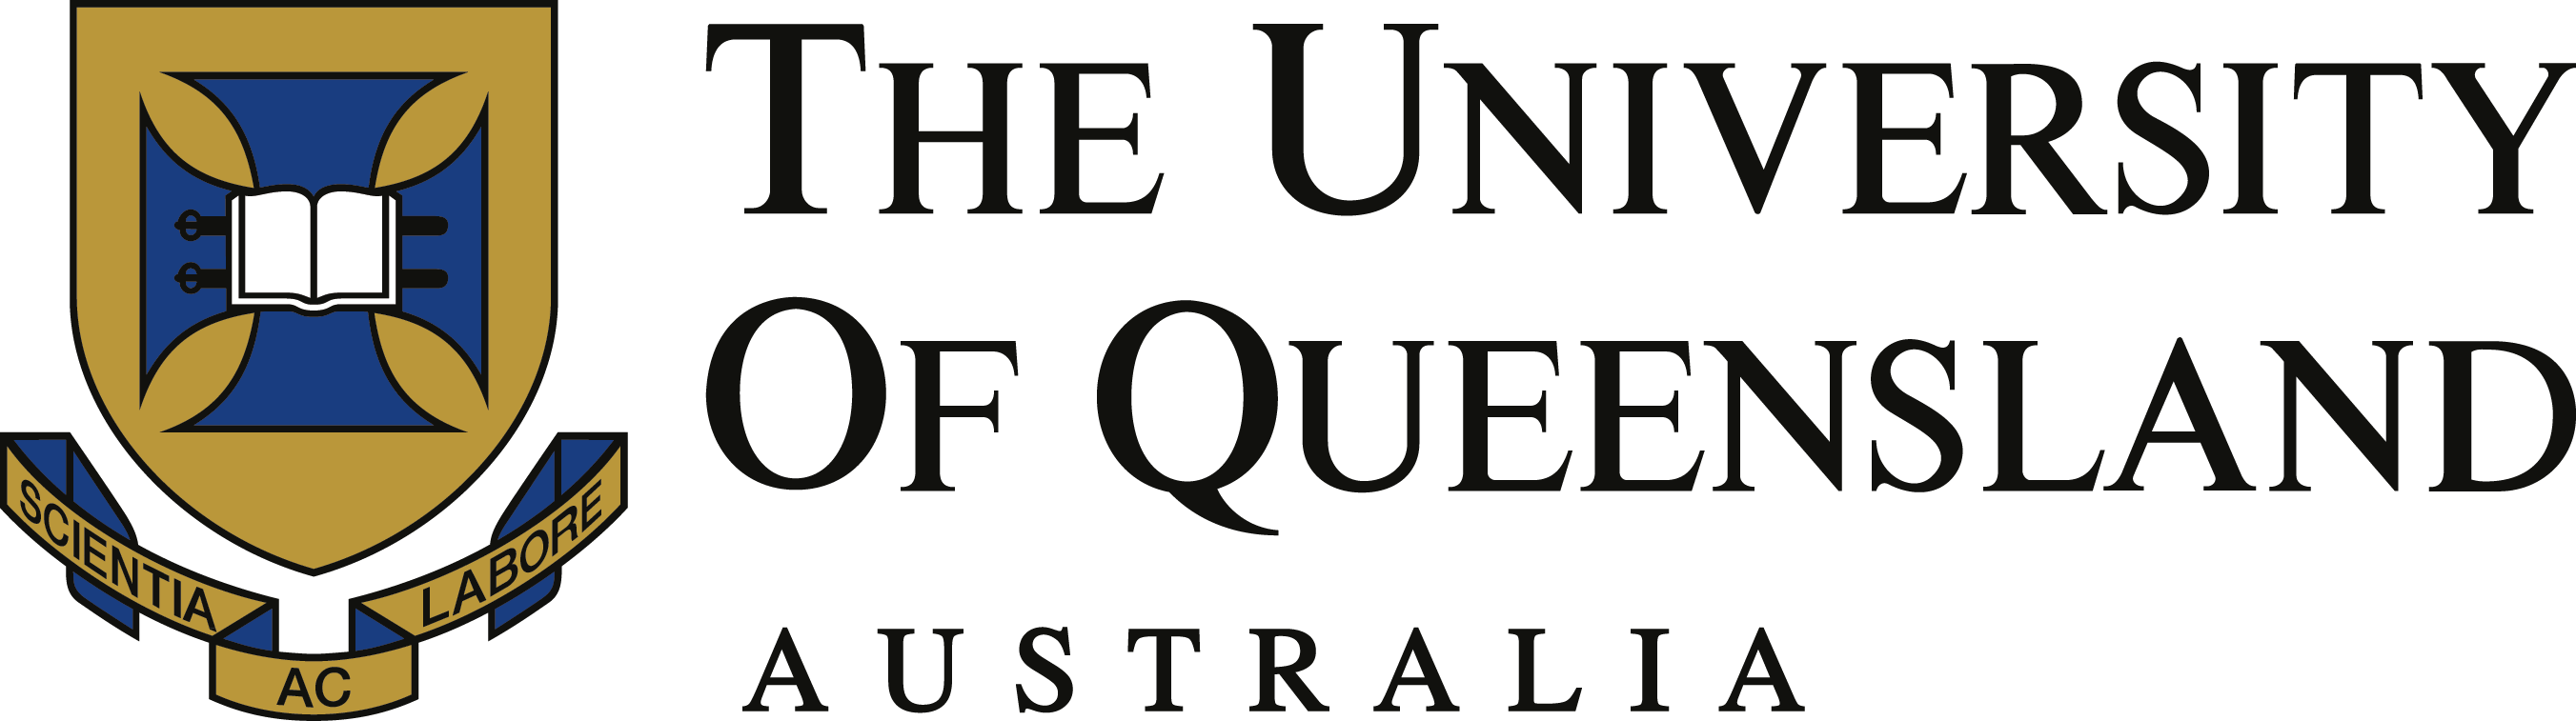 School of Biomedical Sciences - University of Queensland